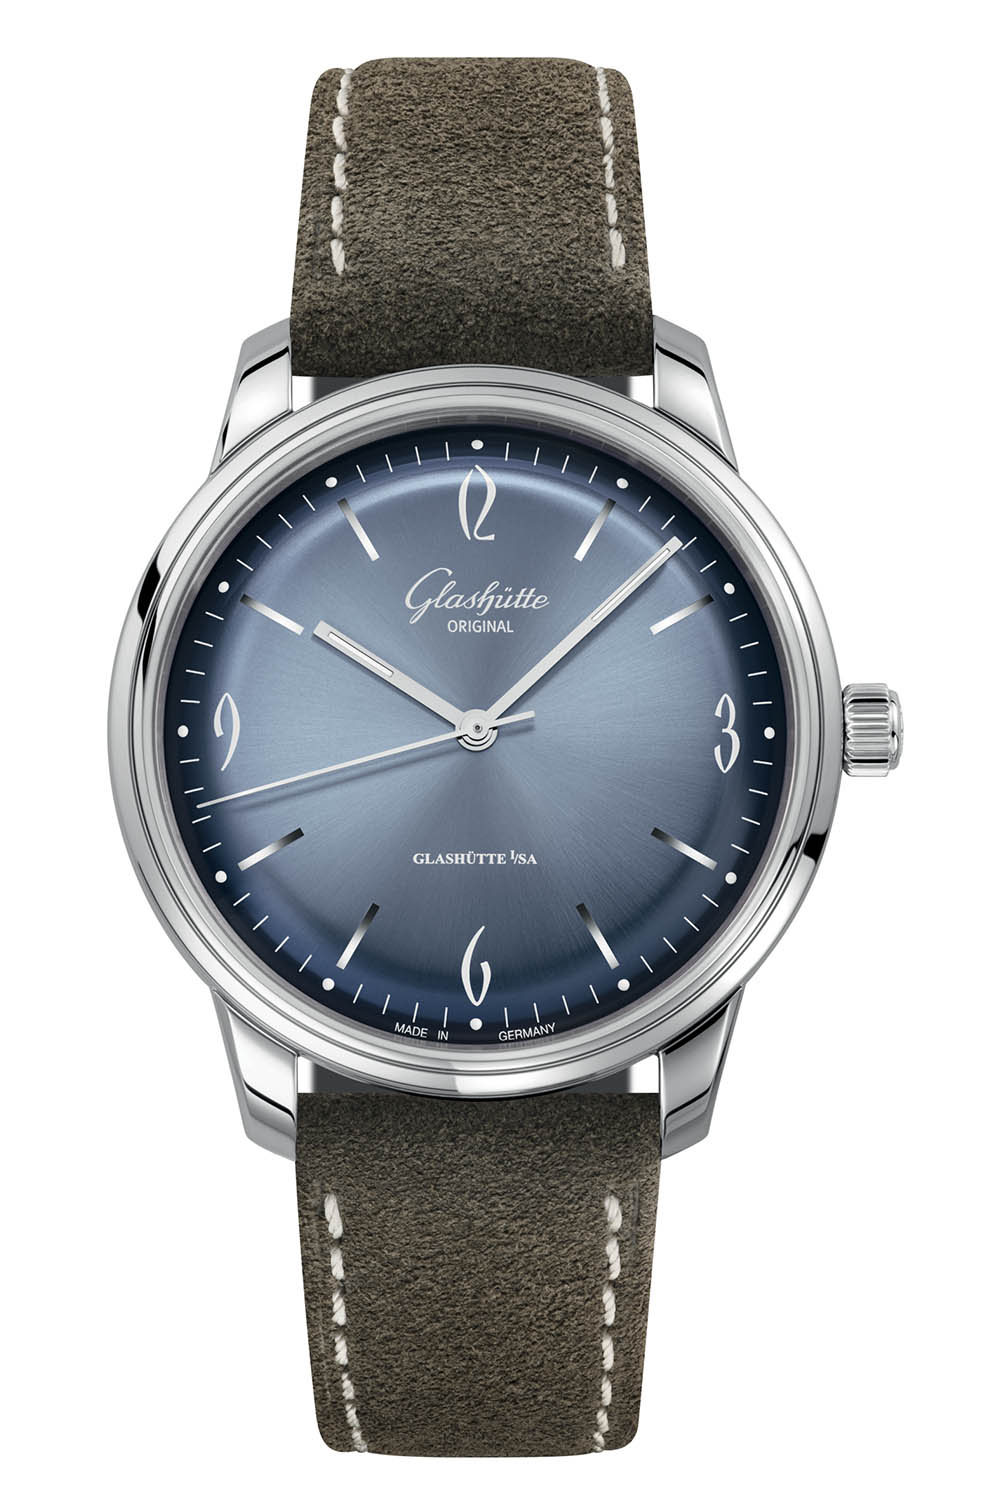 Glashutte Original Sixties and Sixities Chronograph Annual Edition 2020 Glacier Blue - 7